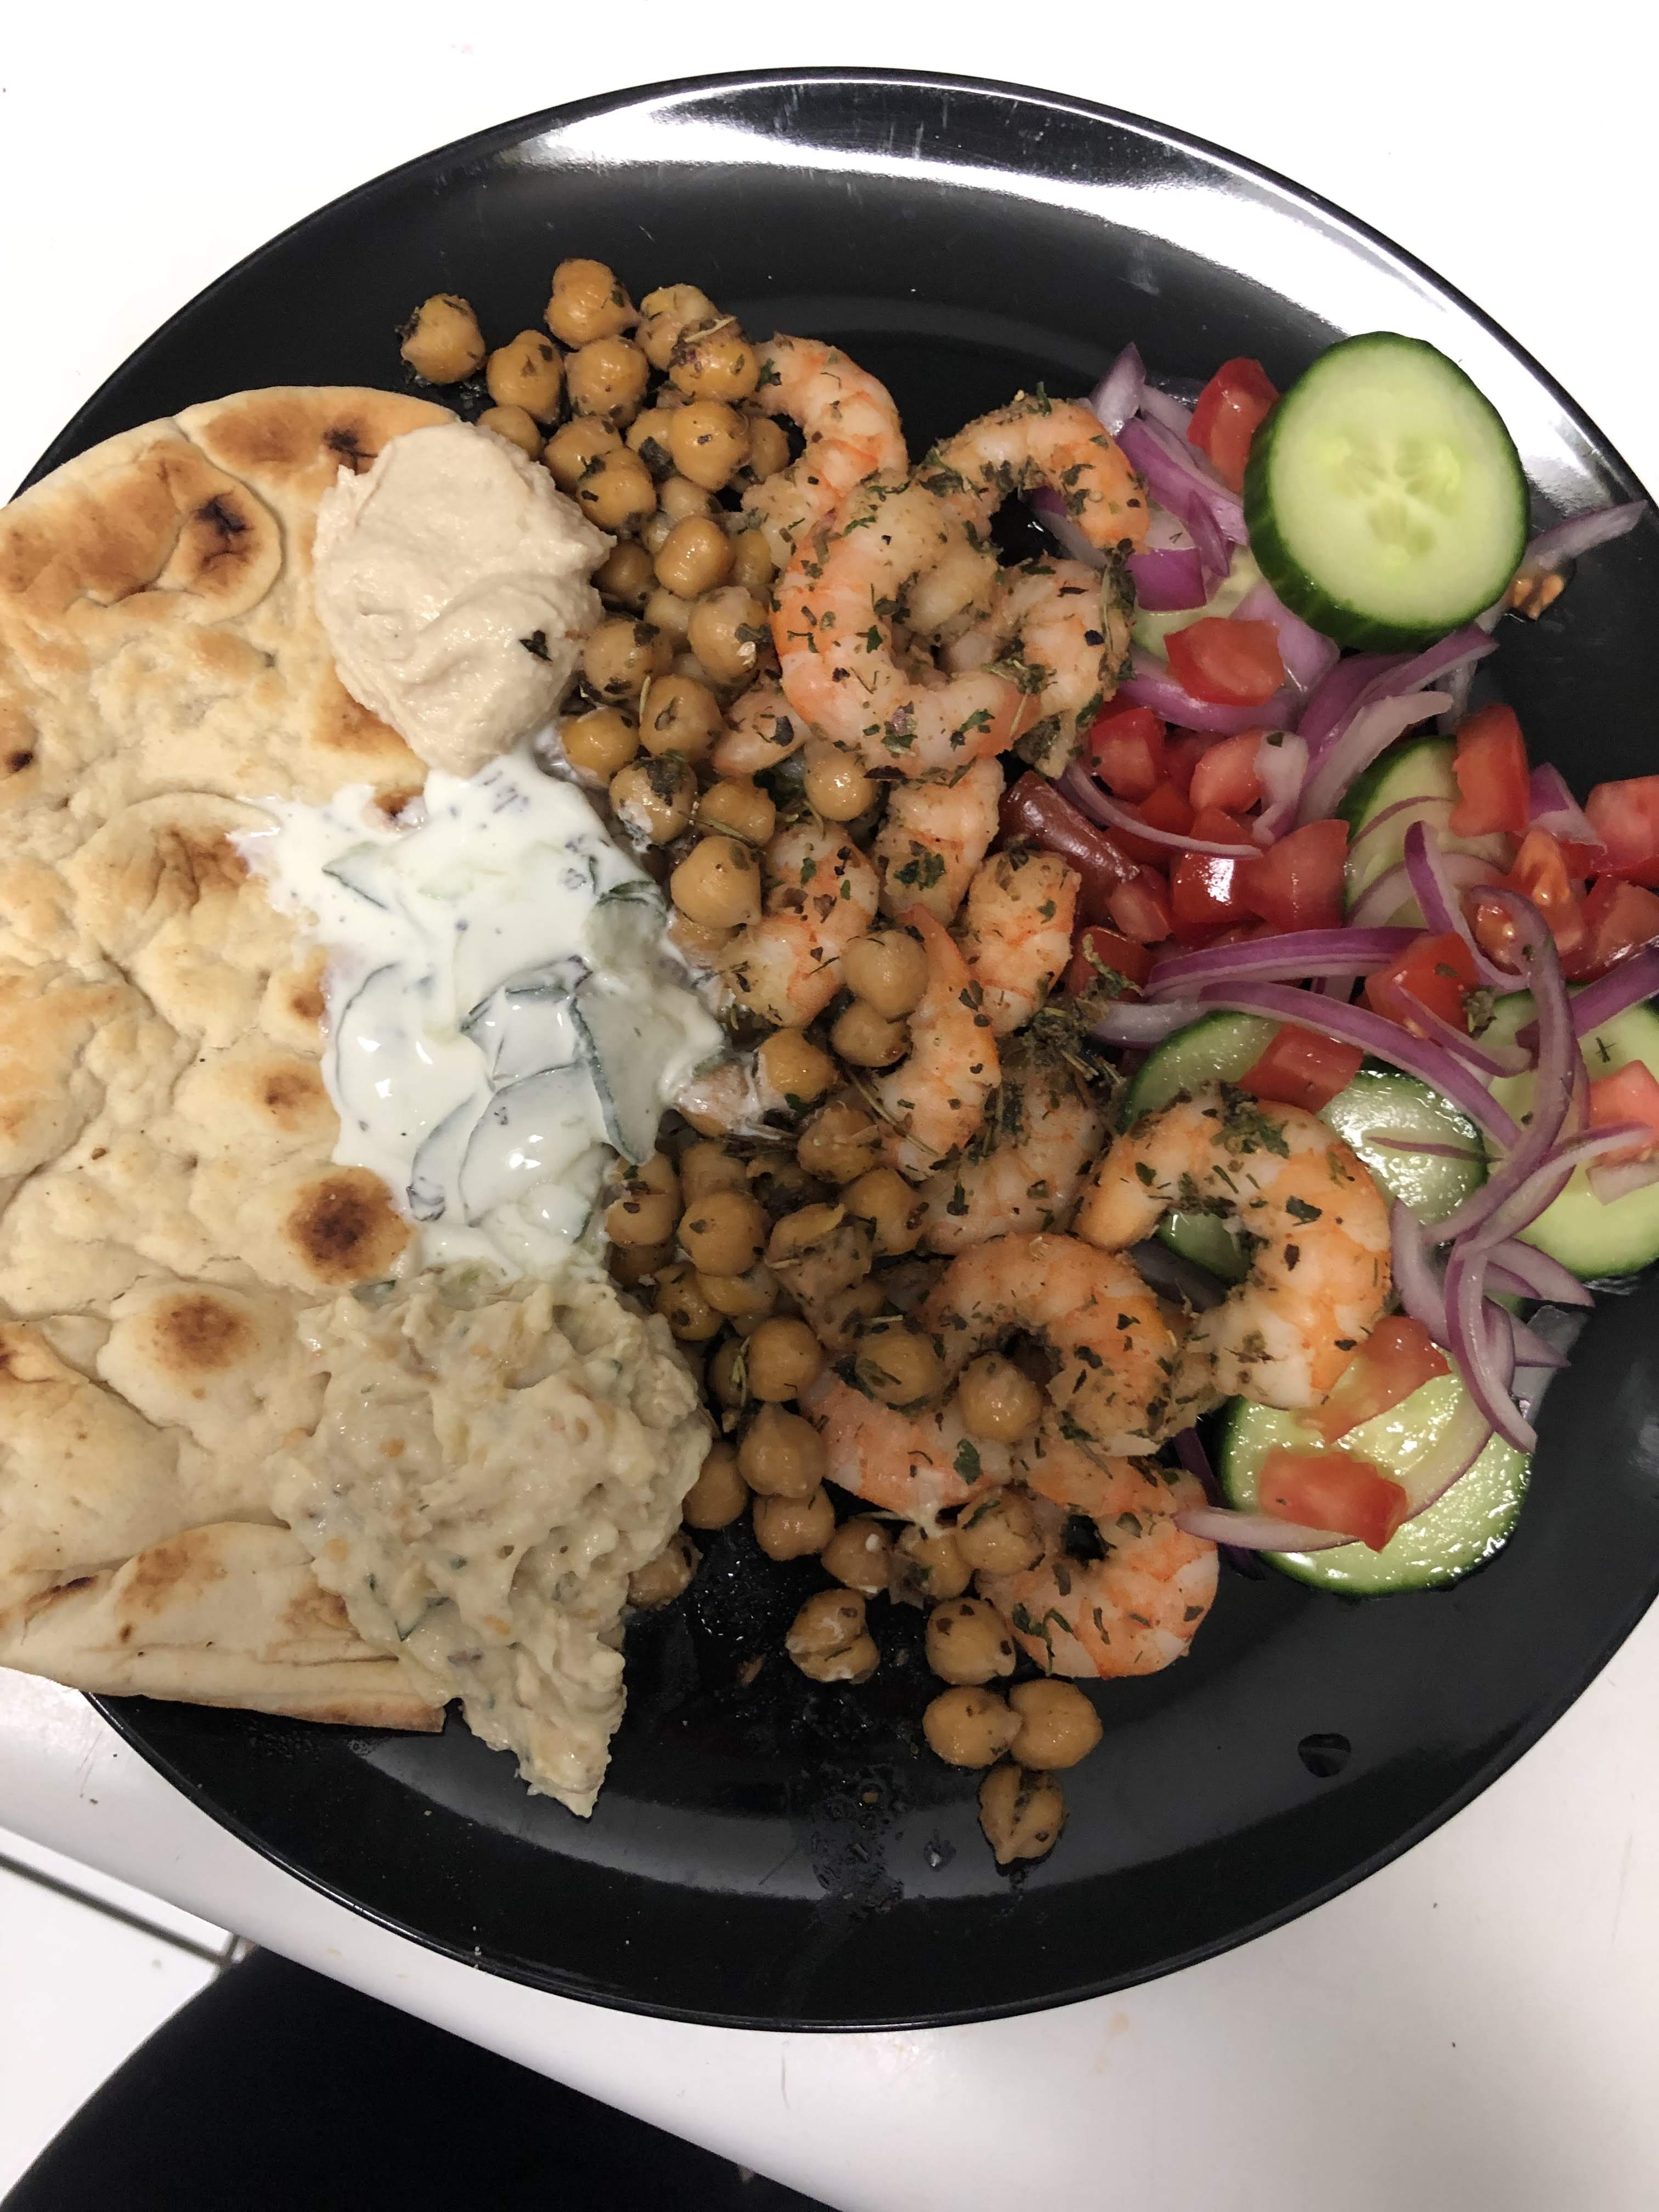 A black plate with chickpeas, a pita with sauces, shrimp, and a salad with cucumber, tomato and onion.